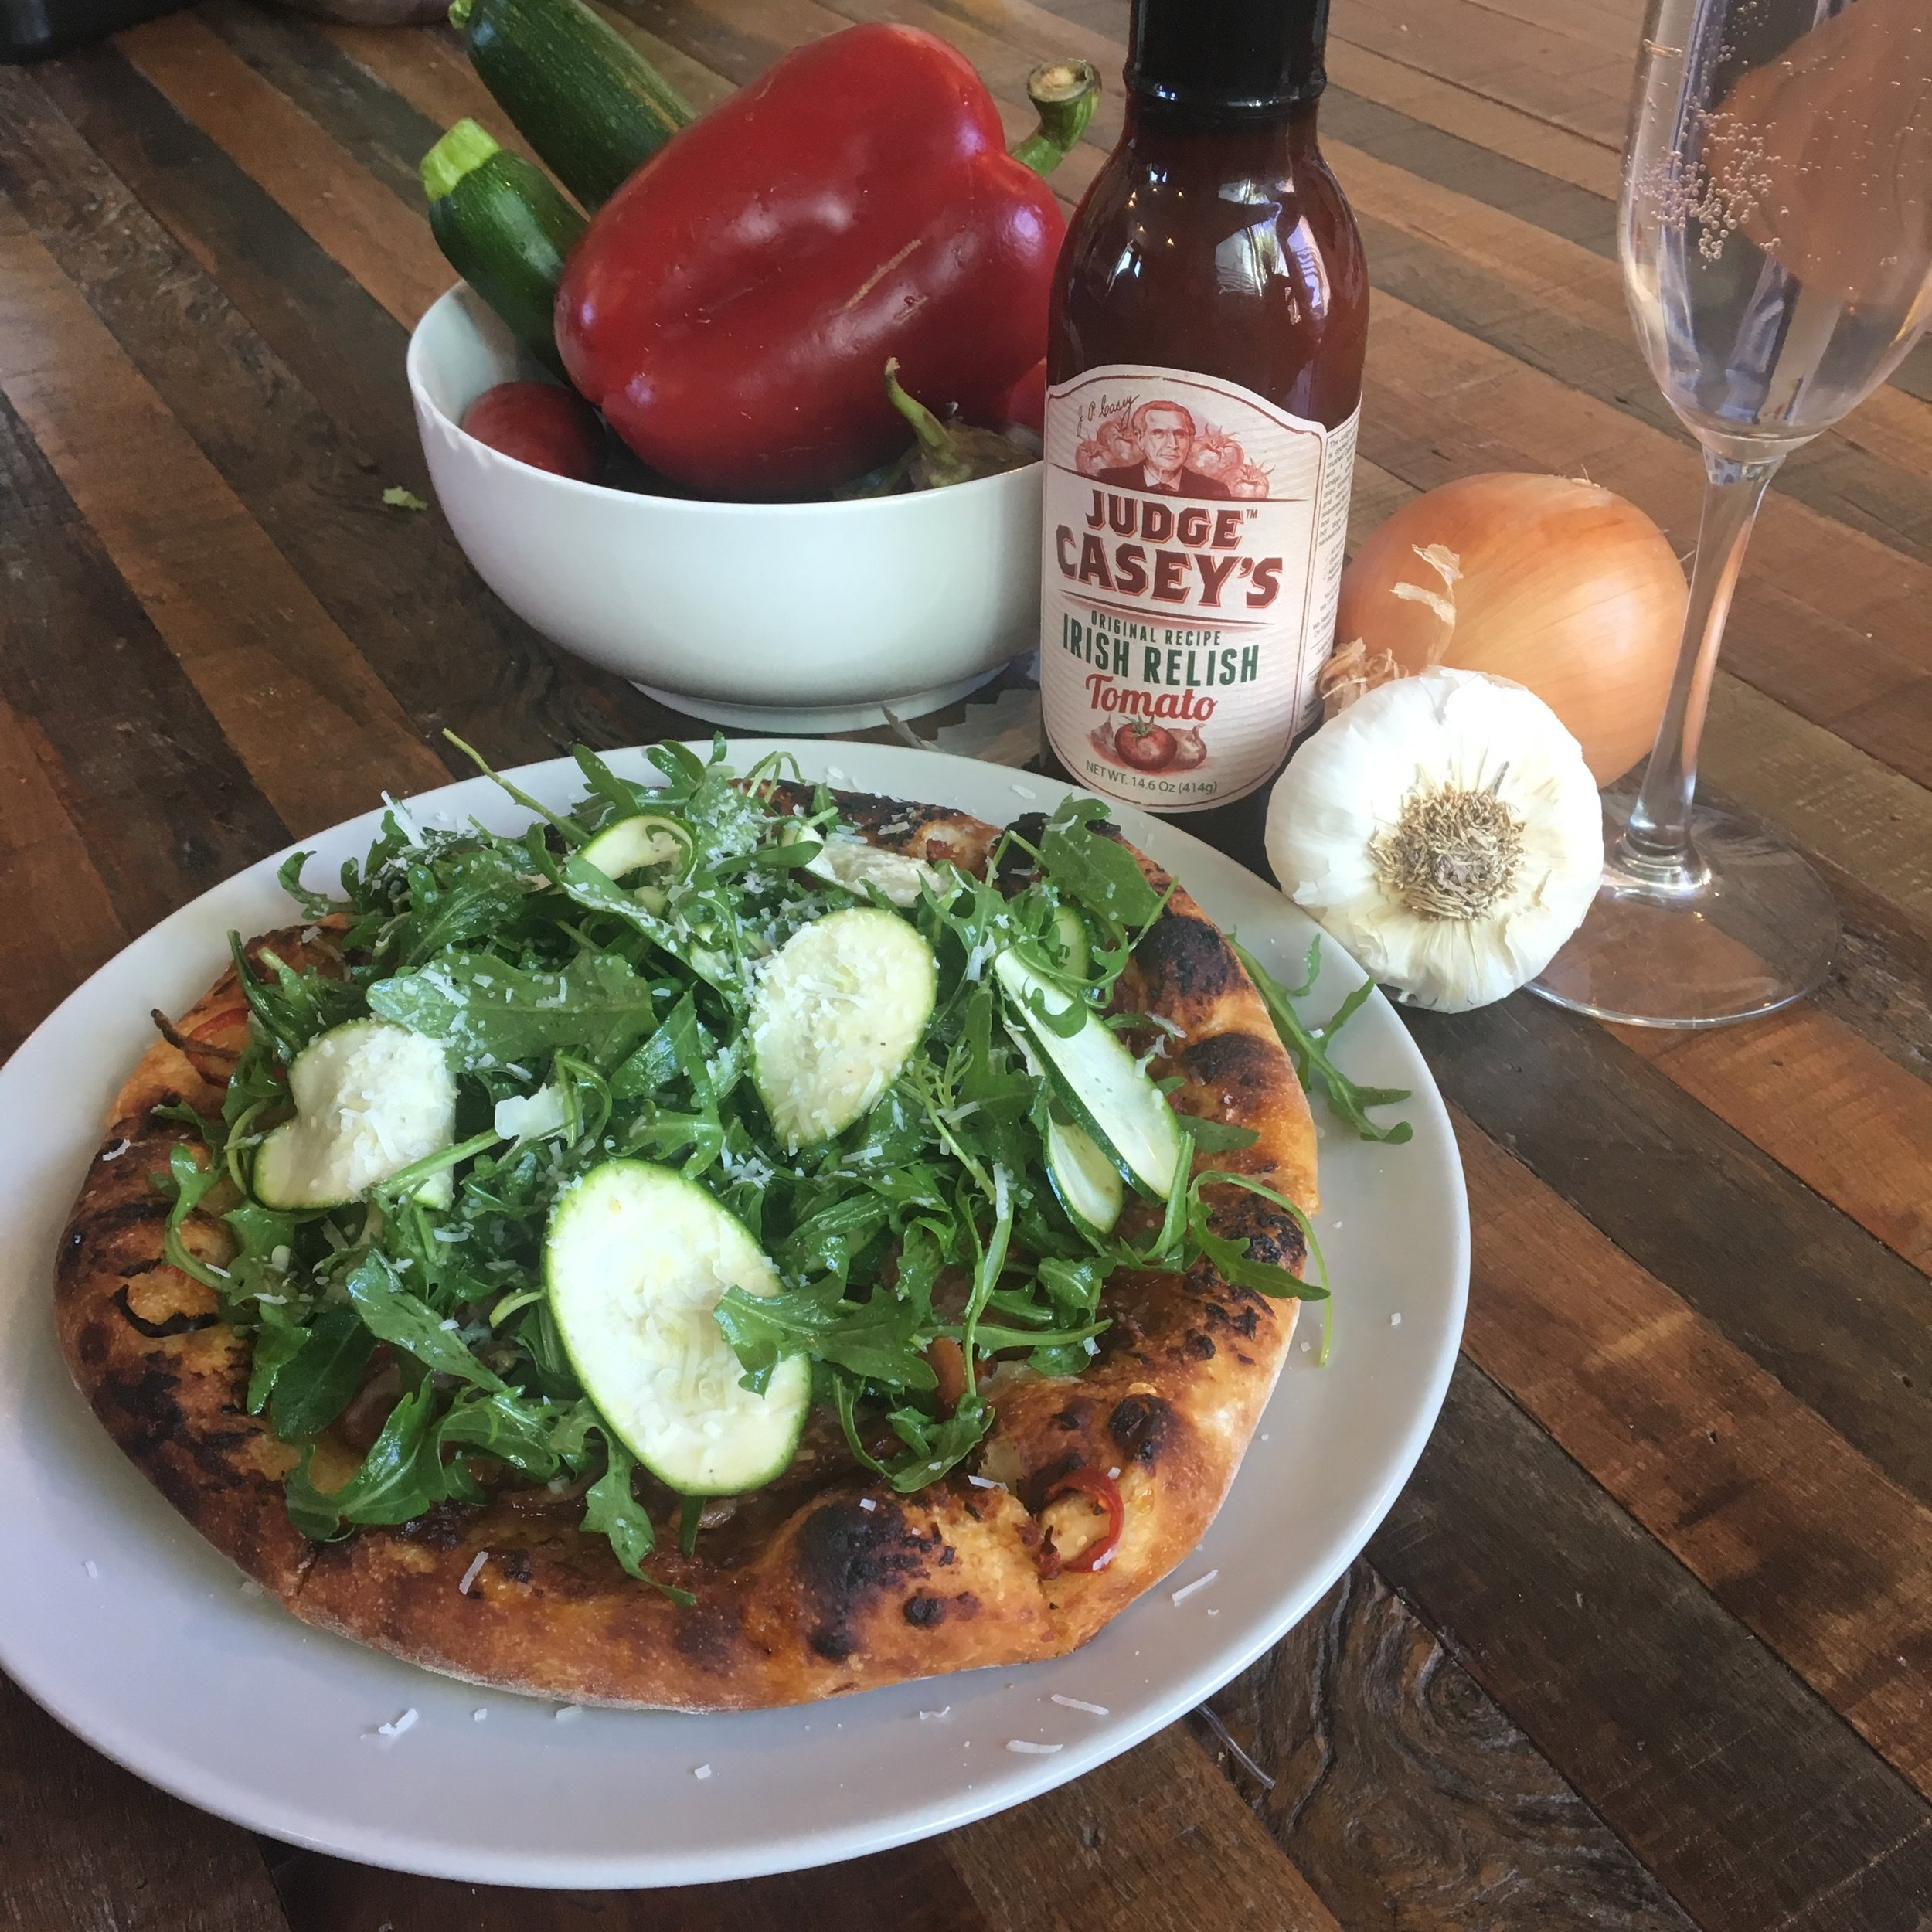 Judge Casey's Pizza - with ham and Arugula